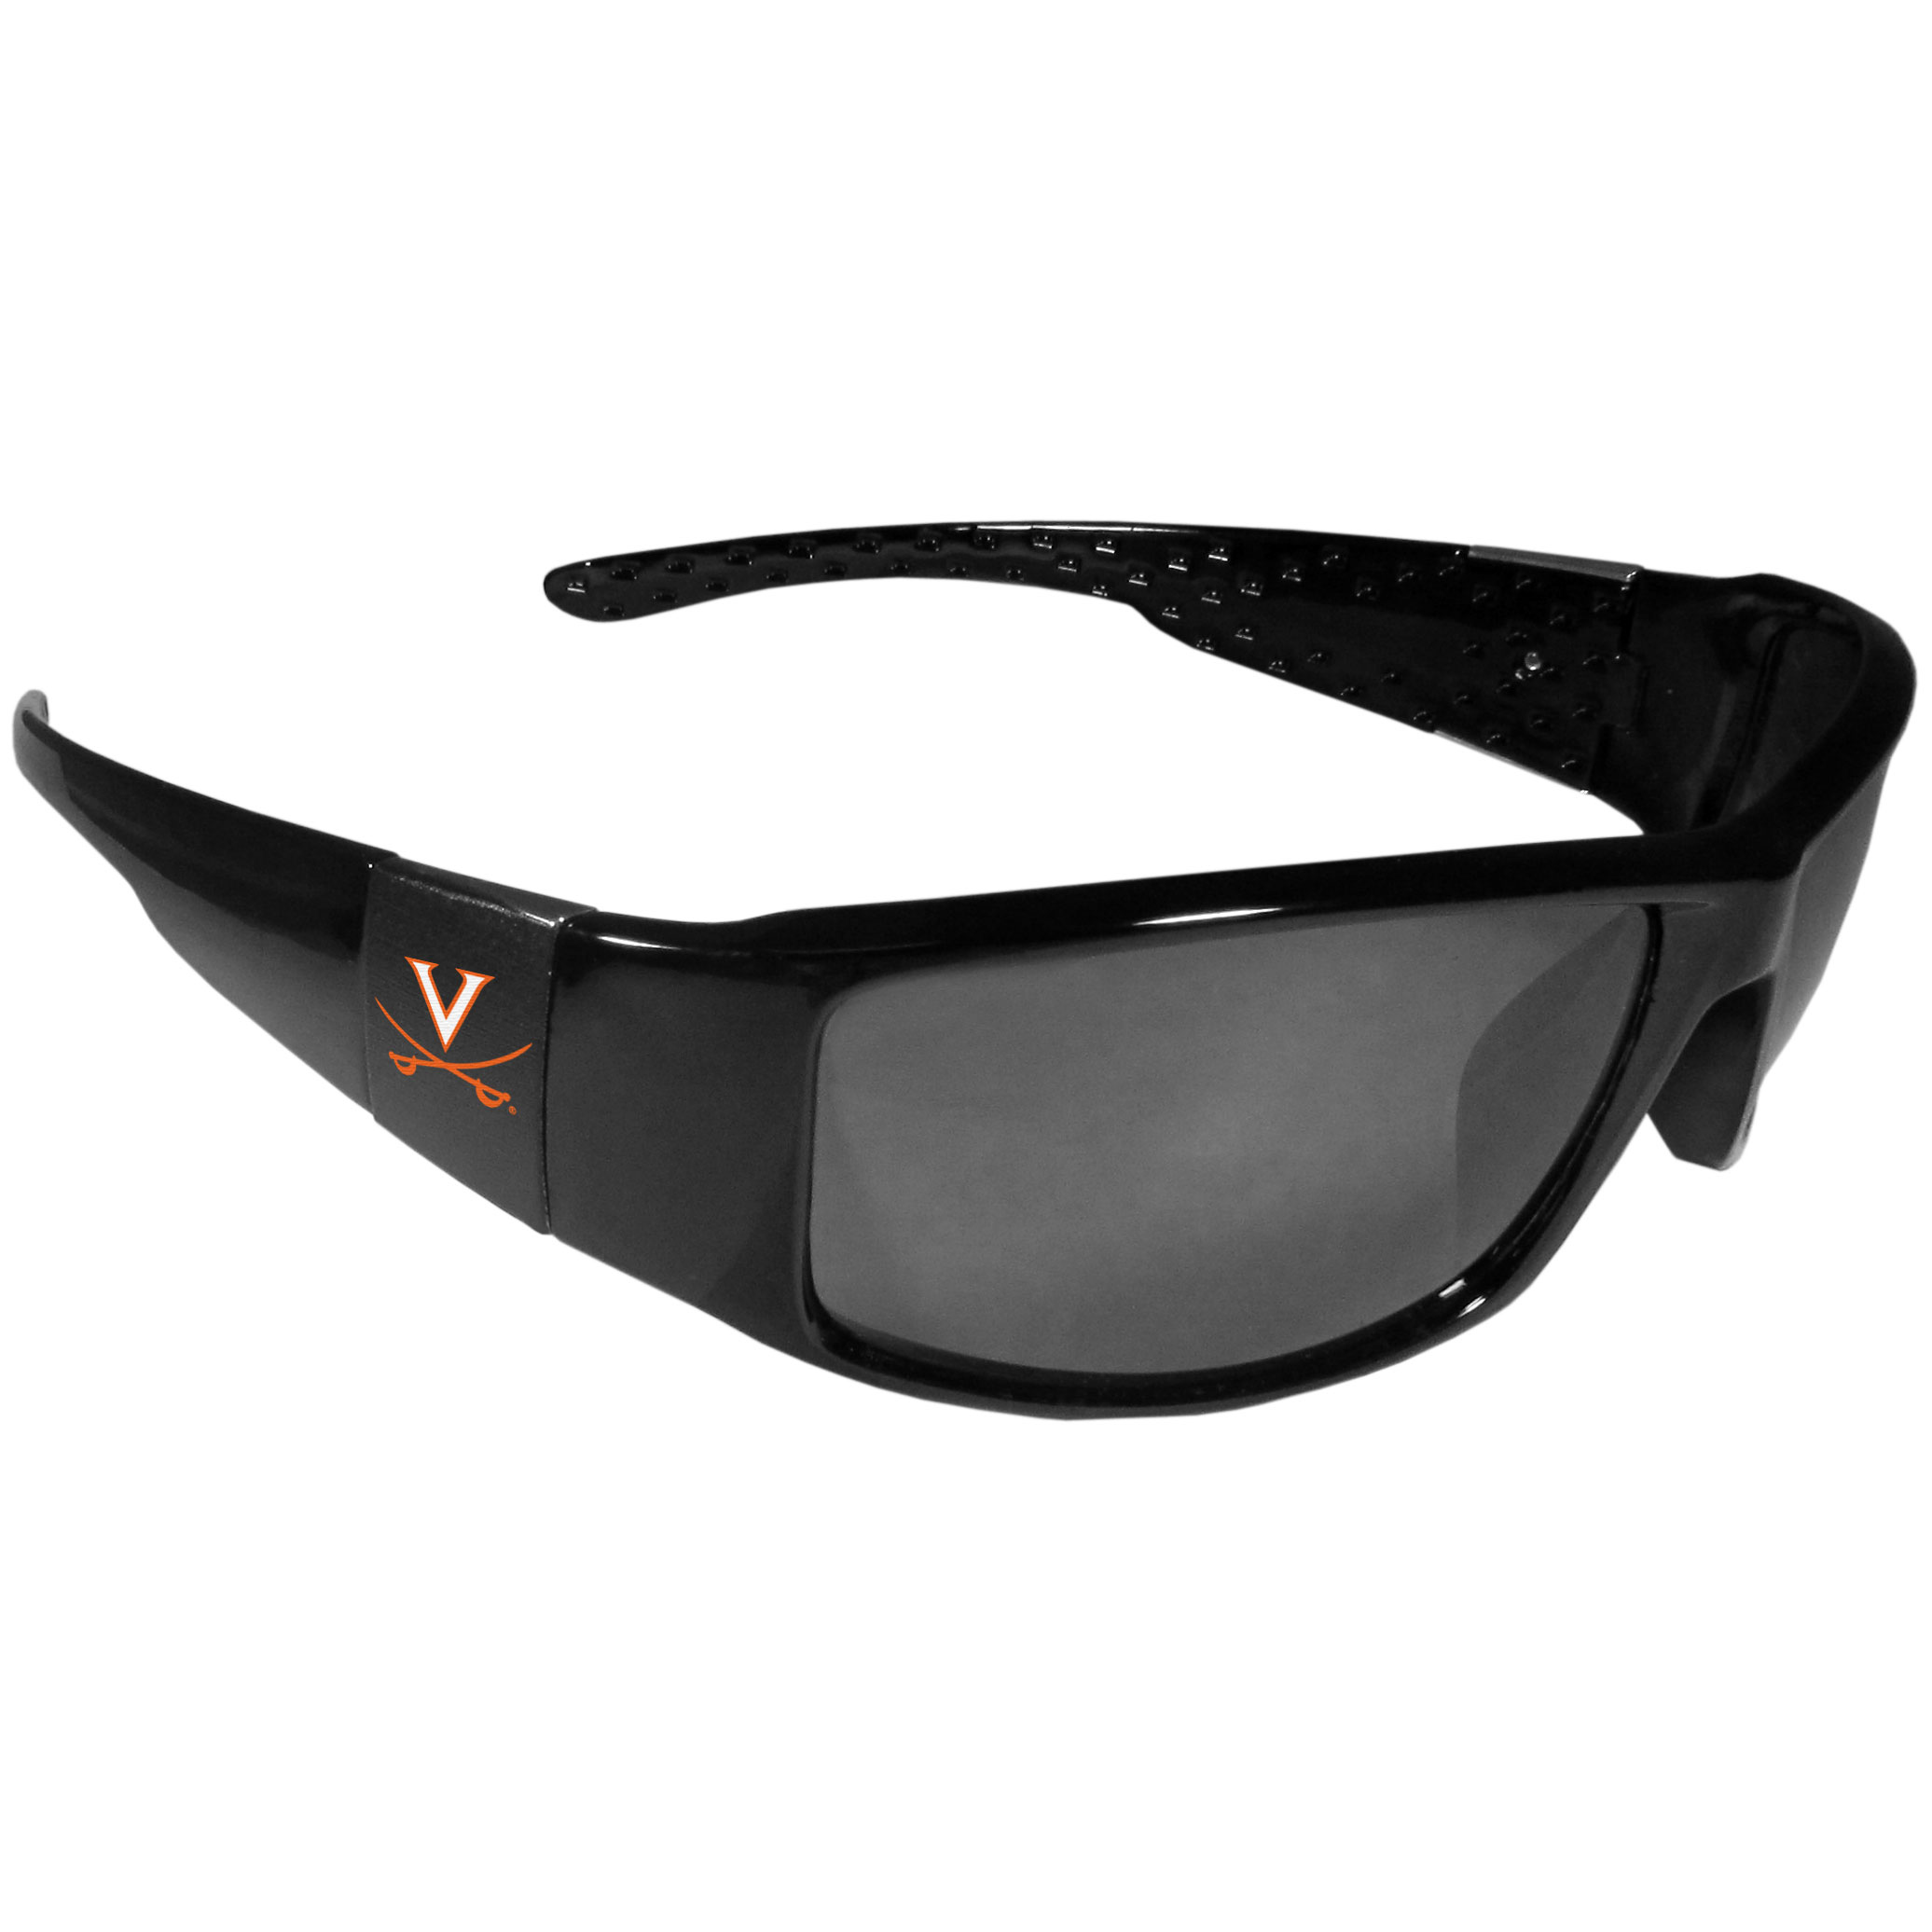 Virginia Cavaliers Black Wrap Sunglasses - These designer inspired frames have a sleek look in all black with  Virginia Cavaliers shields on each arm with a printed logo. The shades are perfect for any outdoor activity like; golfing, driving, hiking, fishing or cheering on the team at a tailgating event or at a home game day BBQ with a lens rating of 100% UVA/UVB for maximum UV protection. The high-quality frames are as durable as they are fashionable and with their classic look they are the perfect fan accessory that can be worn everyday for every occasion.